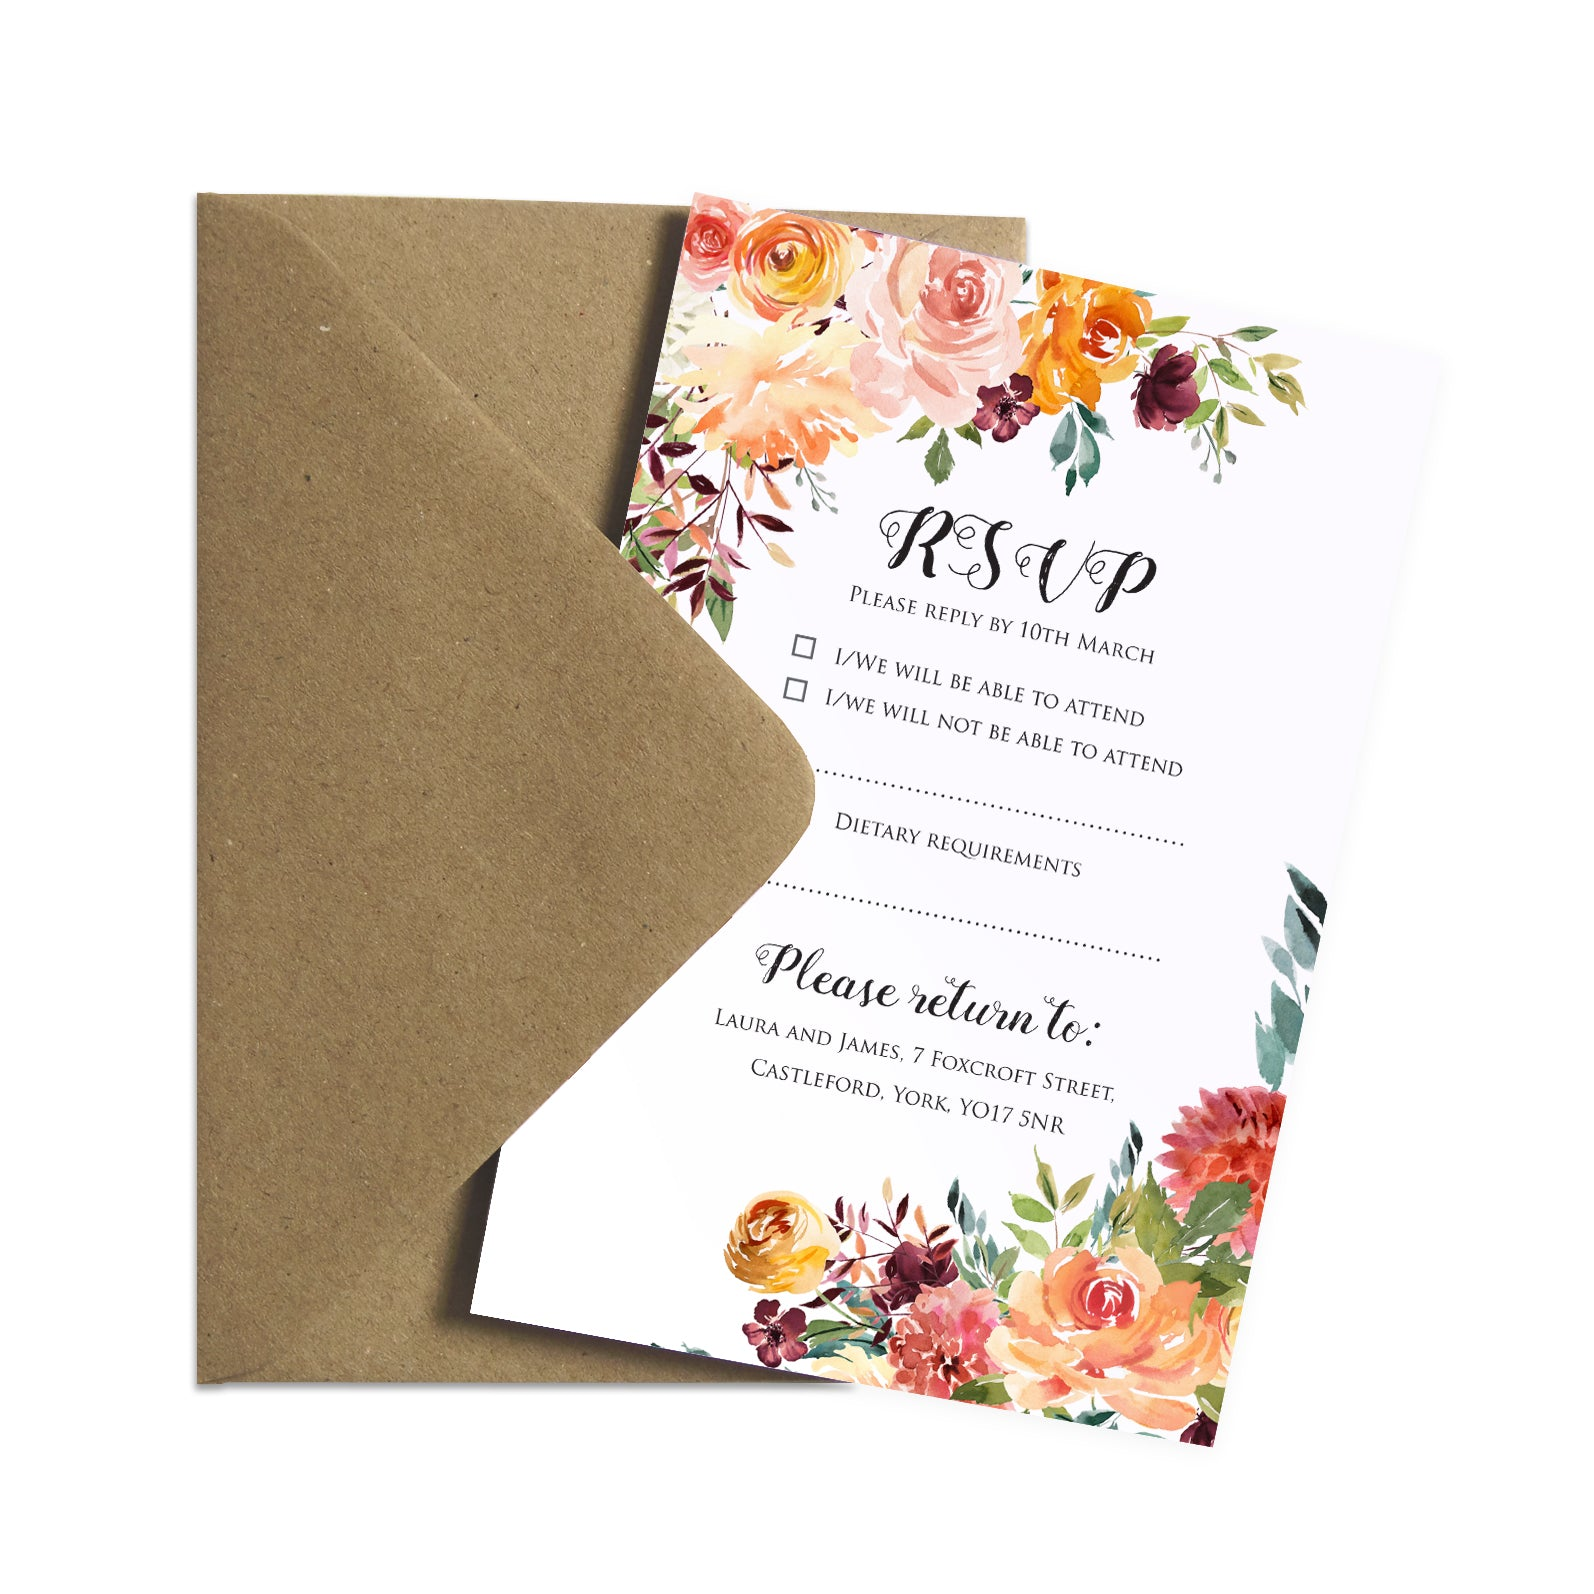 Paprika Rsvp Cards Orange Floral Wedding Invitation Autumn Wedding